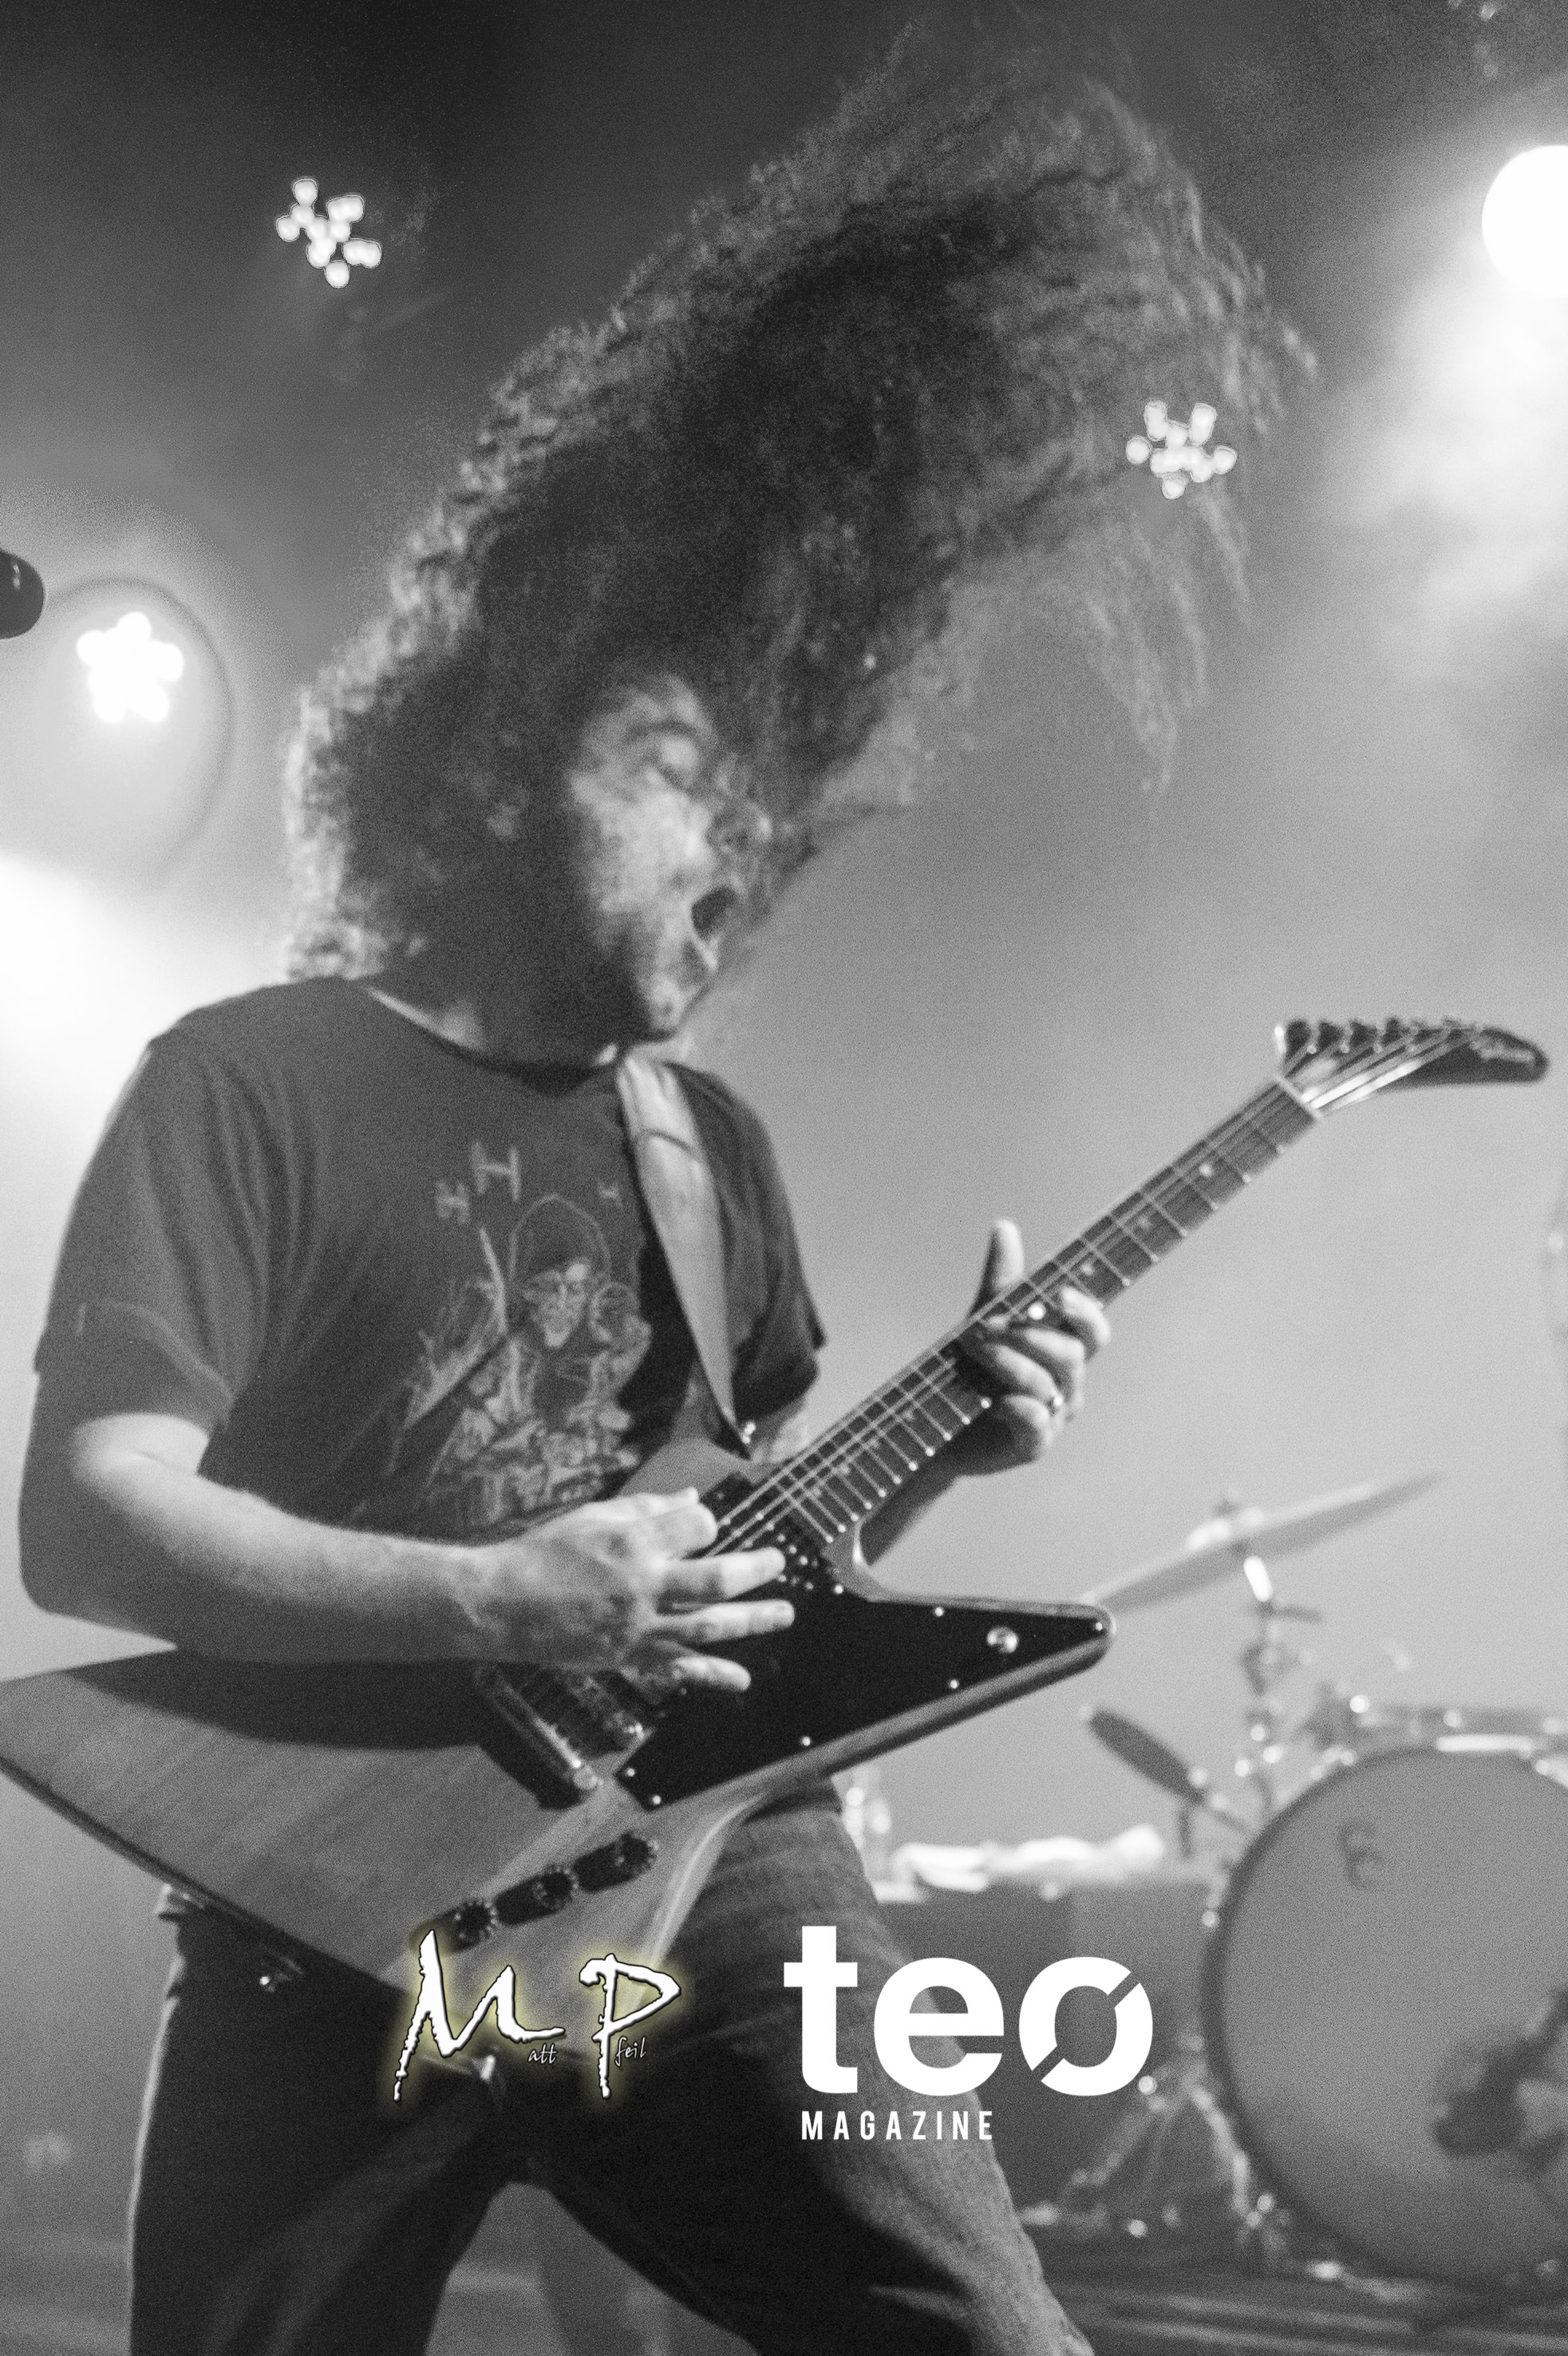 Adelaide Music Blog-Sydney Music Blog-Coheed and Cambria-Claudio Sanchez